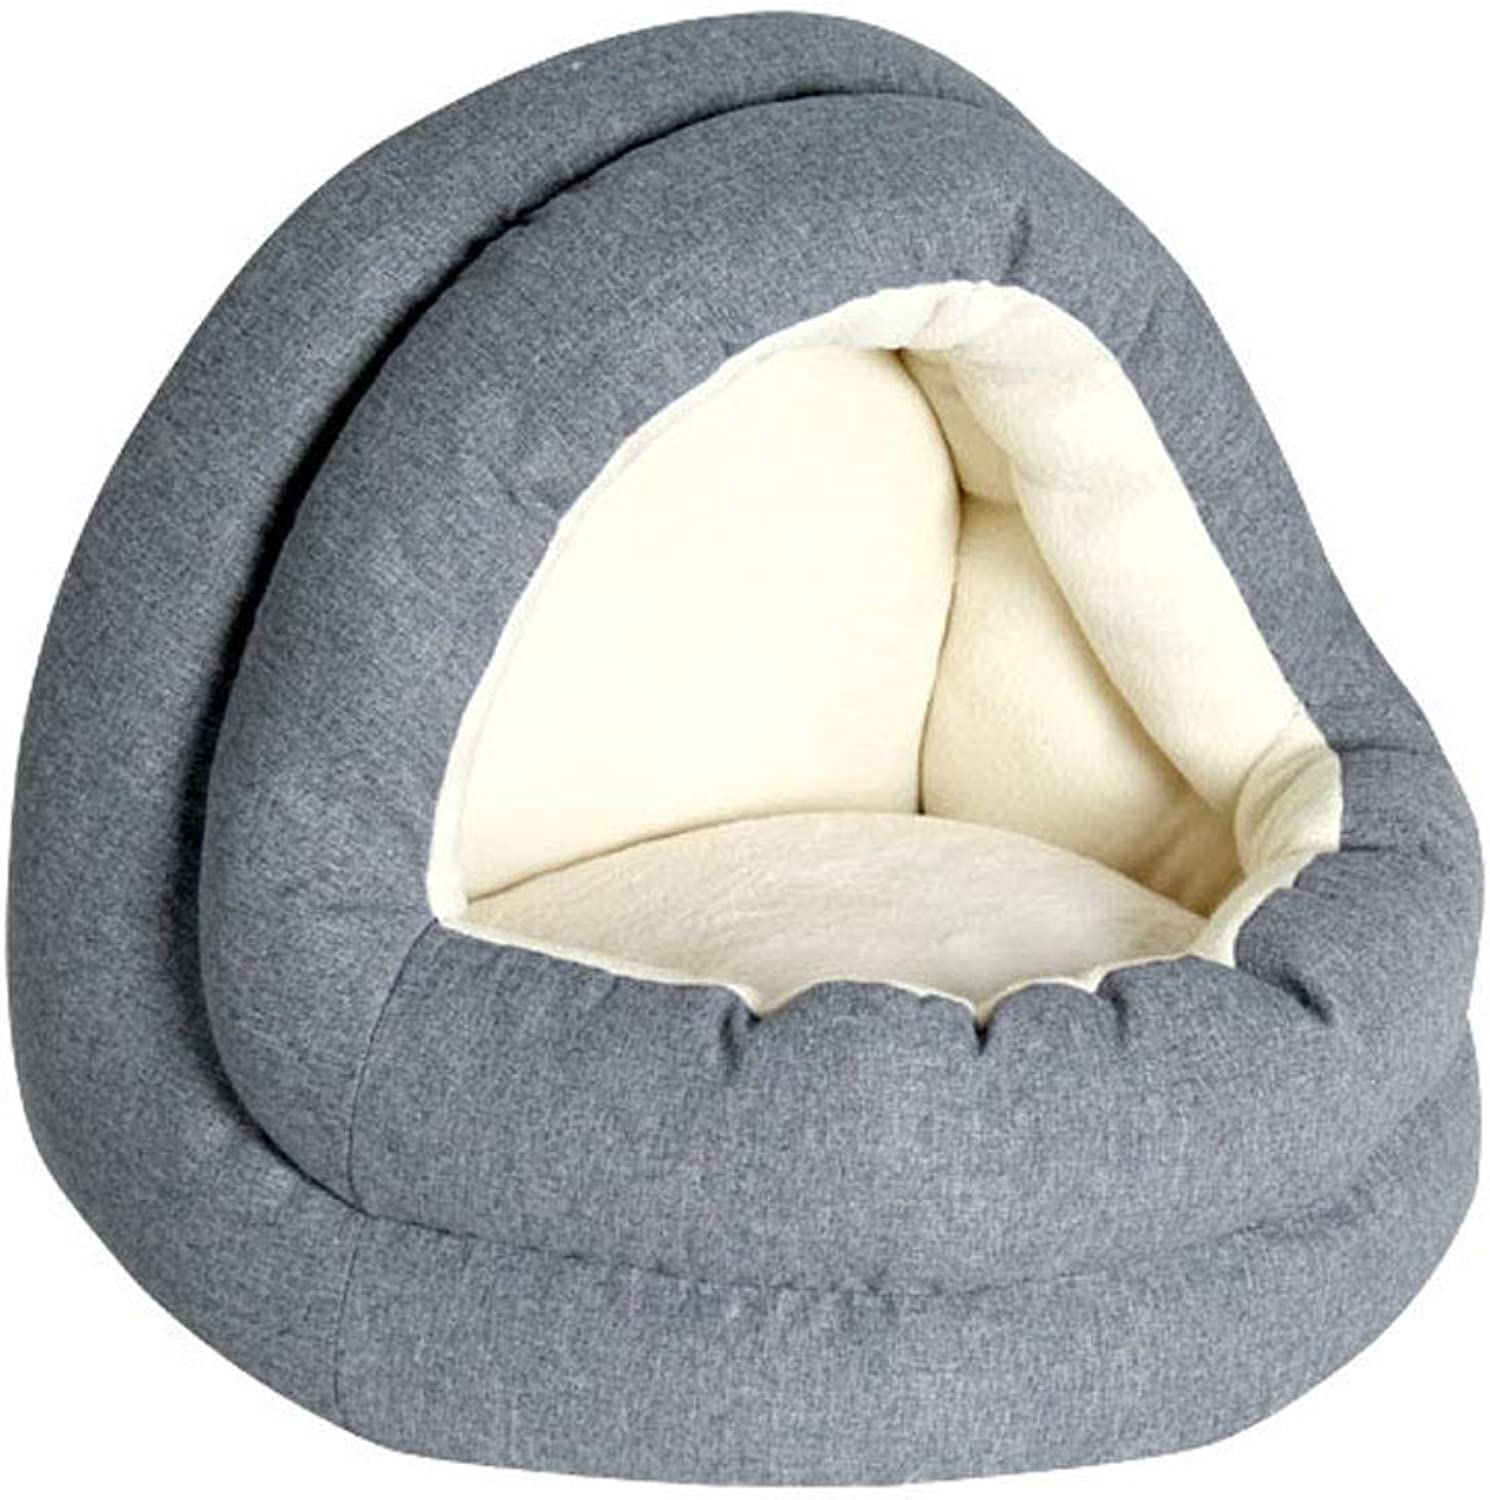 GCHOME Dog bed Cat Bed,Washable Nonslip Dog Kennel Cat Nest Sleeping Bag,Waterproof Removable Plush Warm Cushion Indoor Small Pet Nest (Size   S)